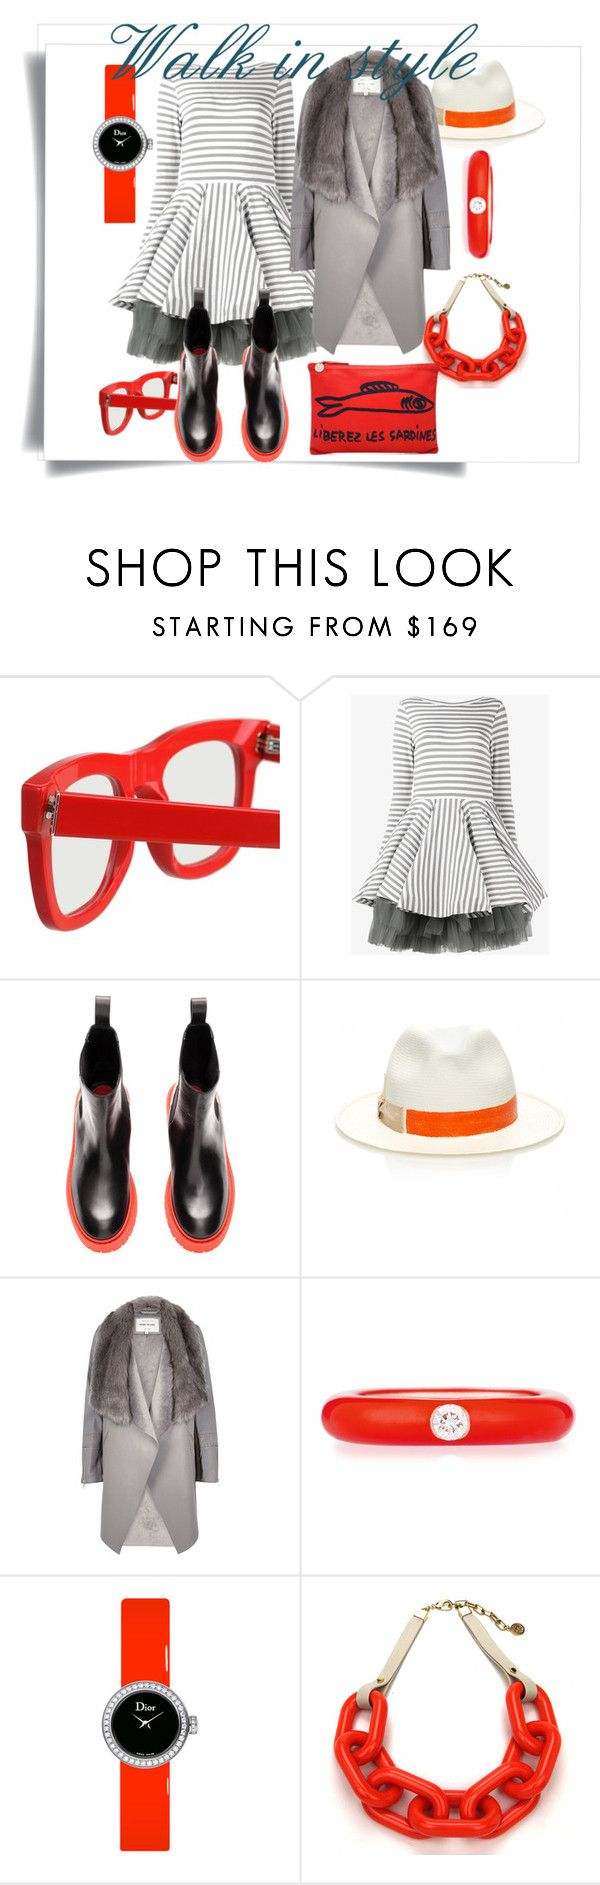 """""""Walk in style"""" by explorer-14748224046 ❤ liked on Polyvore featuring RetroSuperFuture, Natasha Zinko, Borsalino, River Island, Adolfo Courrier, Christian Dior and Clare V."""